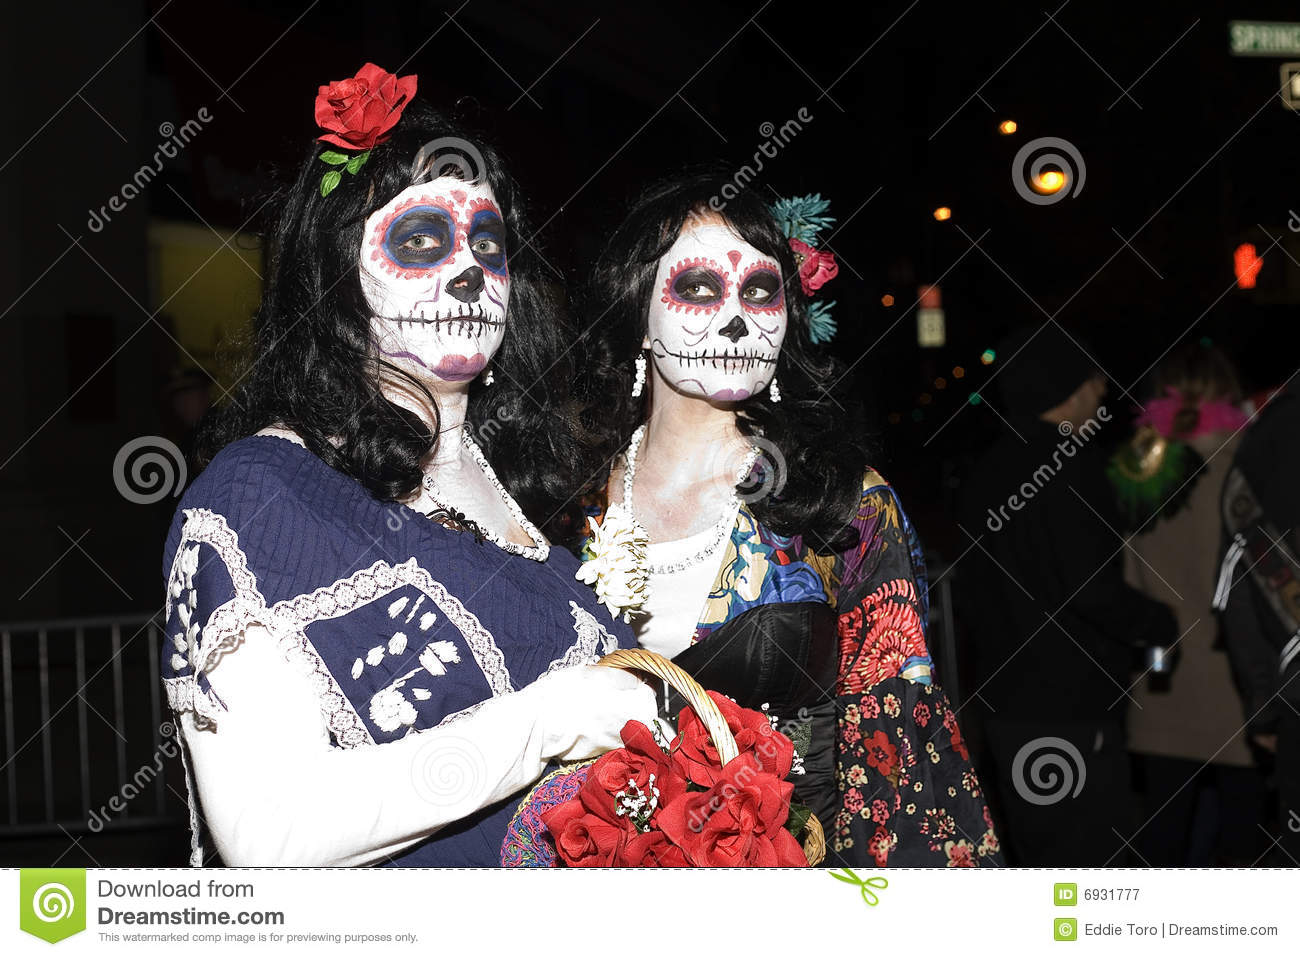 Gay Pride Halloween Costume.Halloween Parade Nyc Editorial Photography Image Of Costumes 6931777